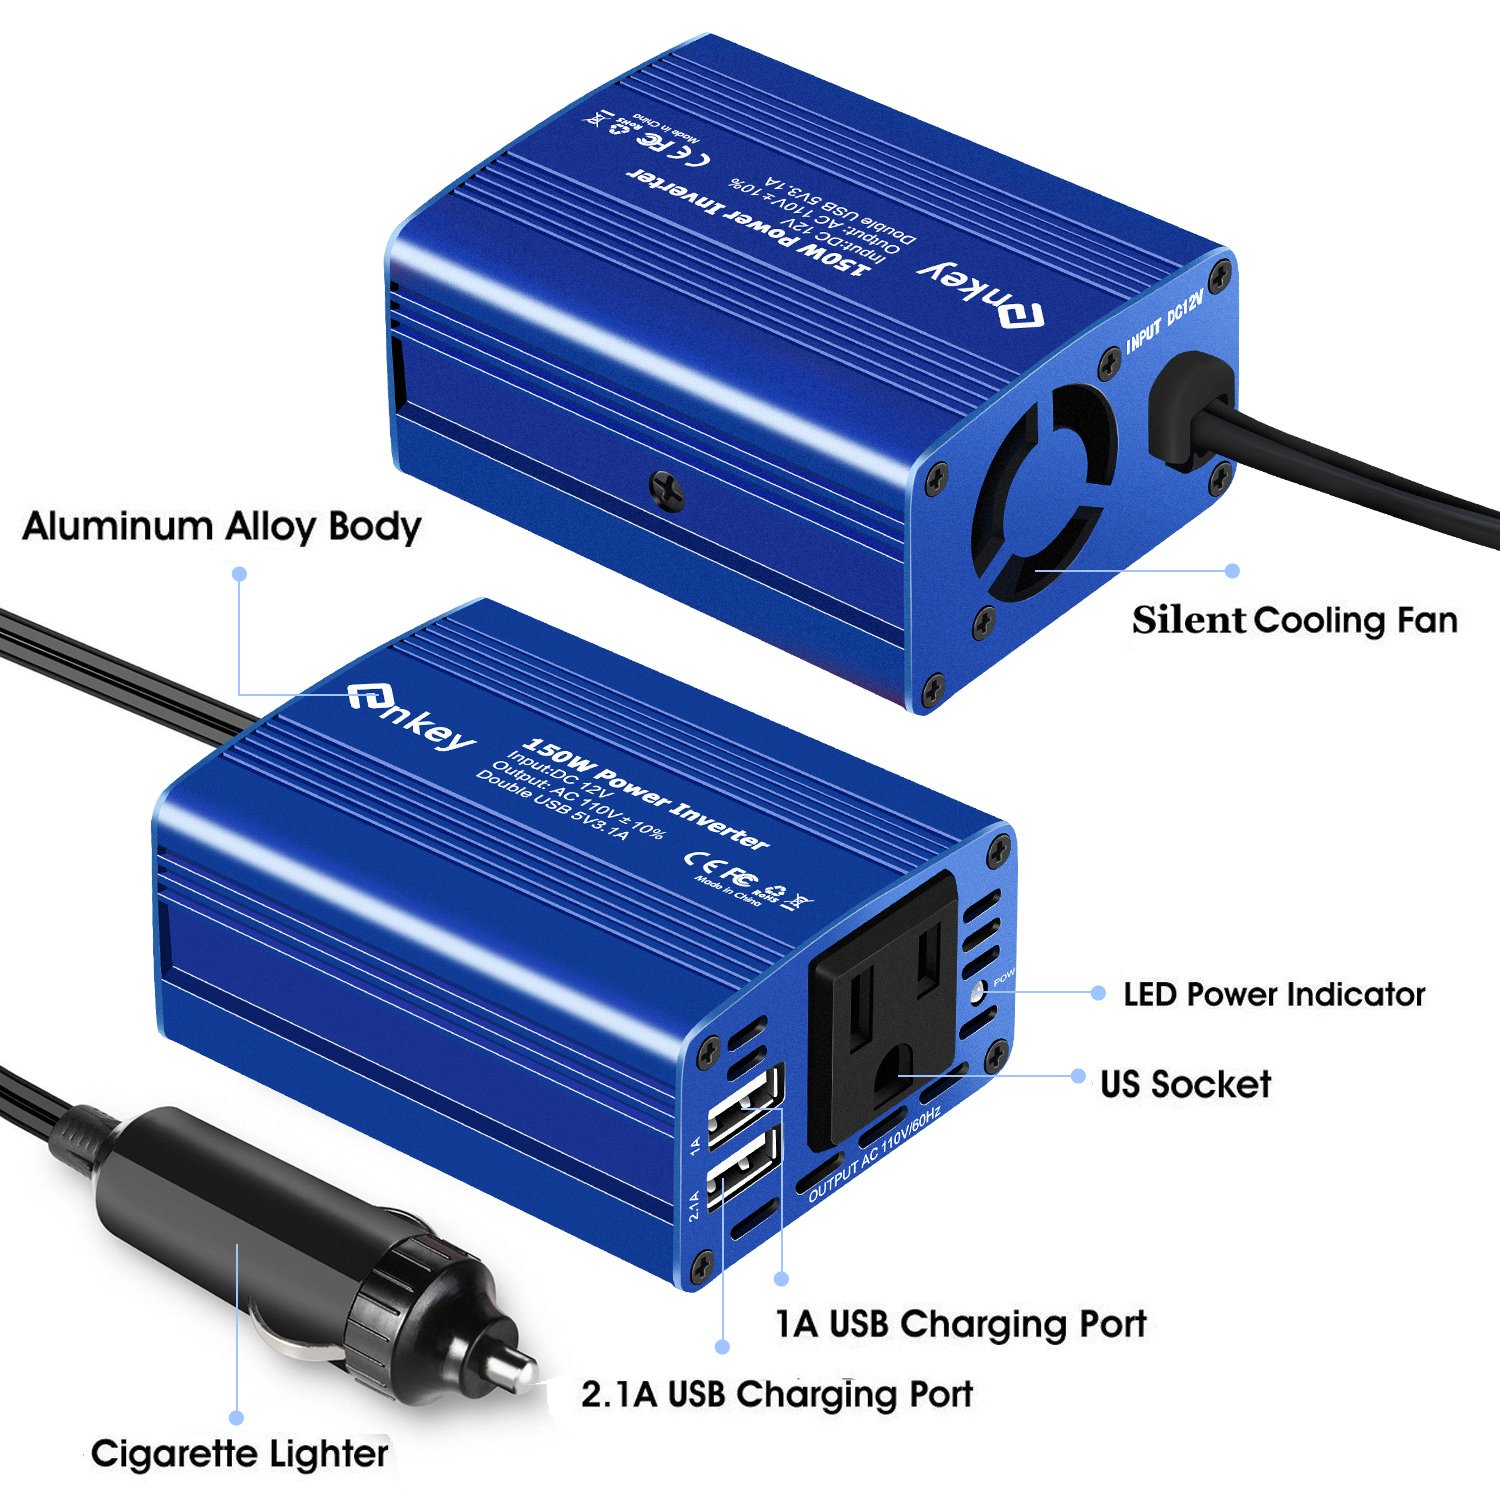 Enkey 150W Car Power Inverter DC 12V to 110V AC Converter with 3.1A Dual USB Charger - Blue by Enkey (Image #3)